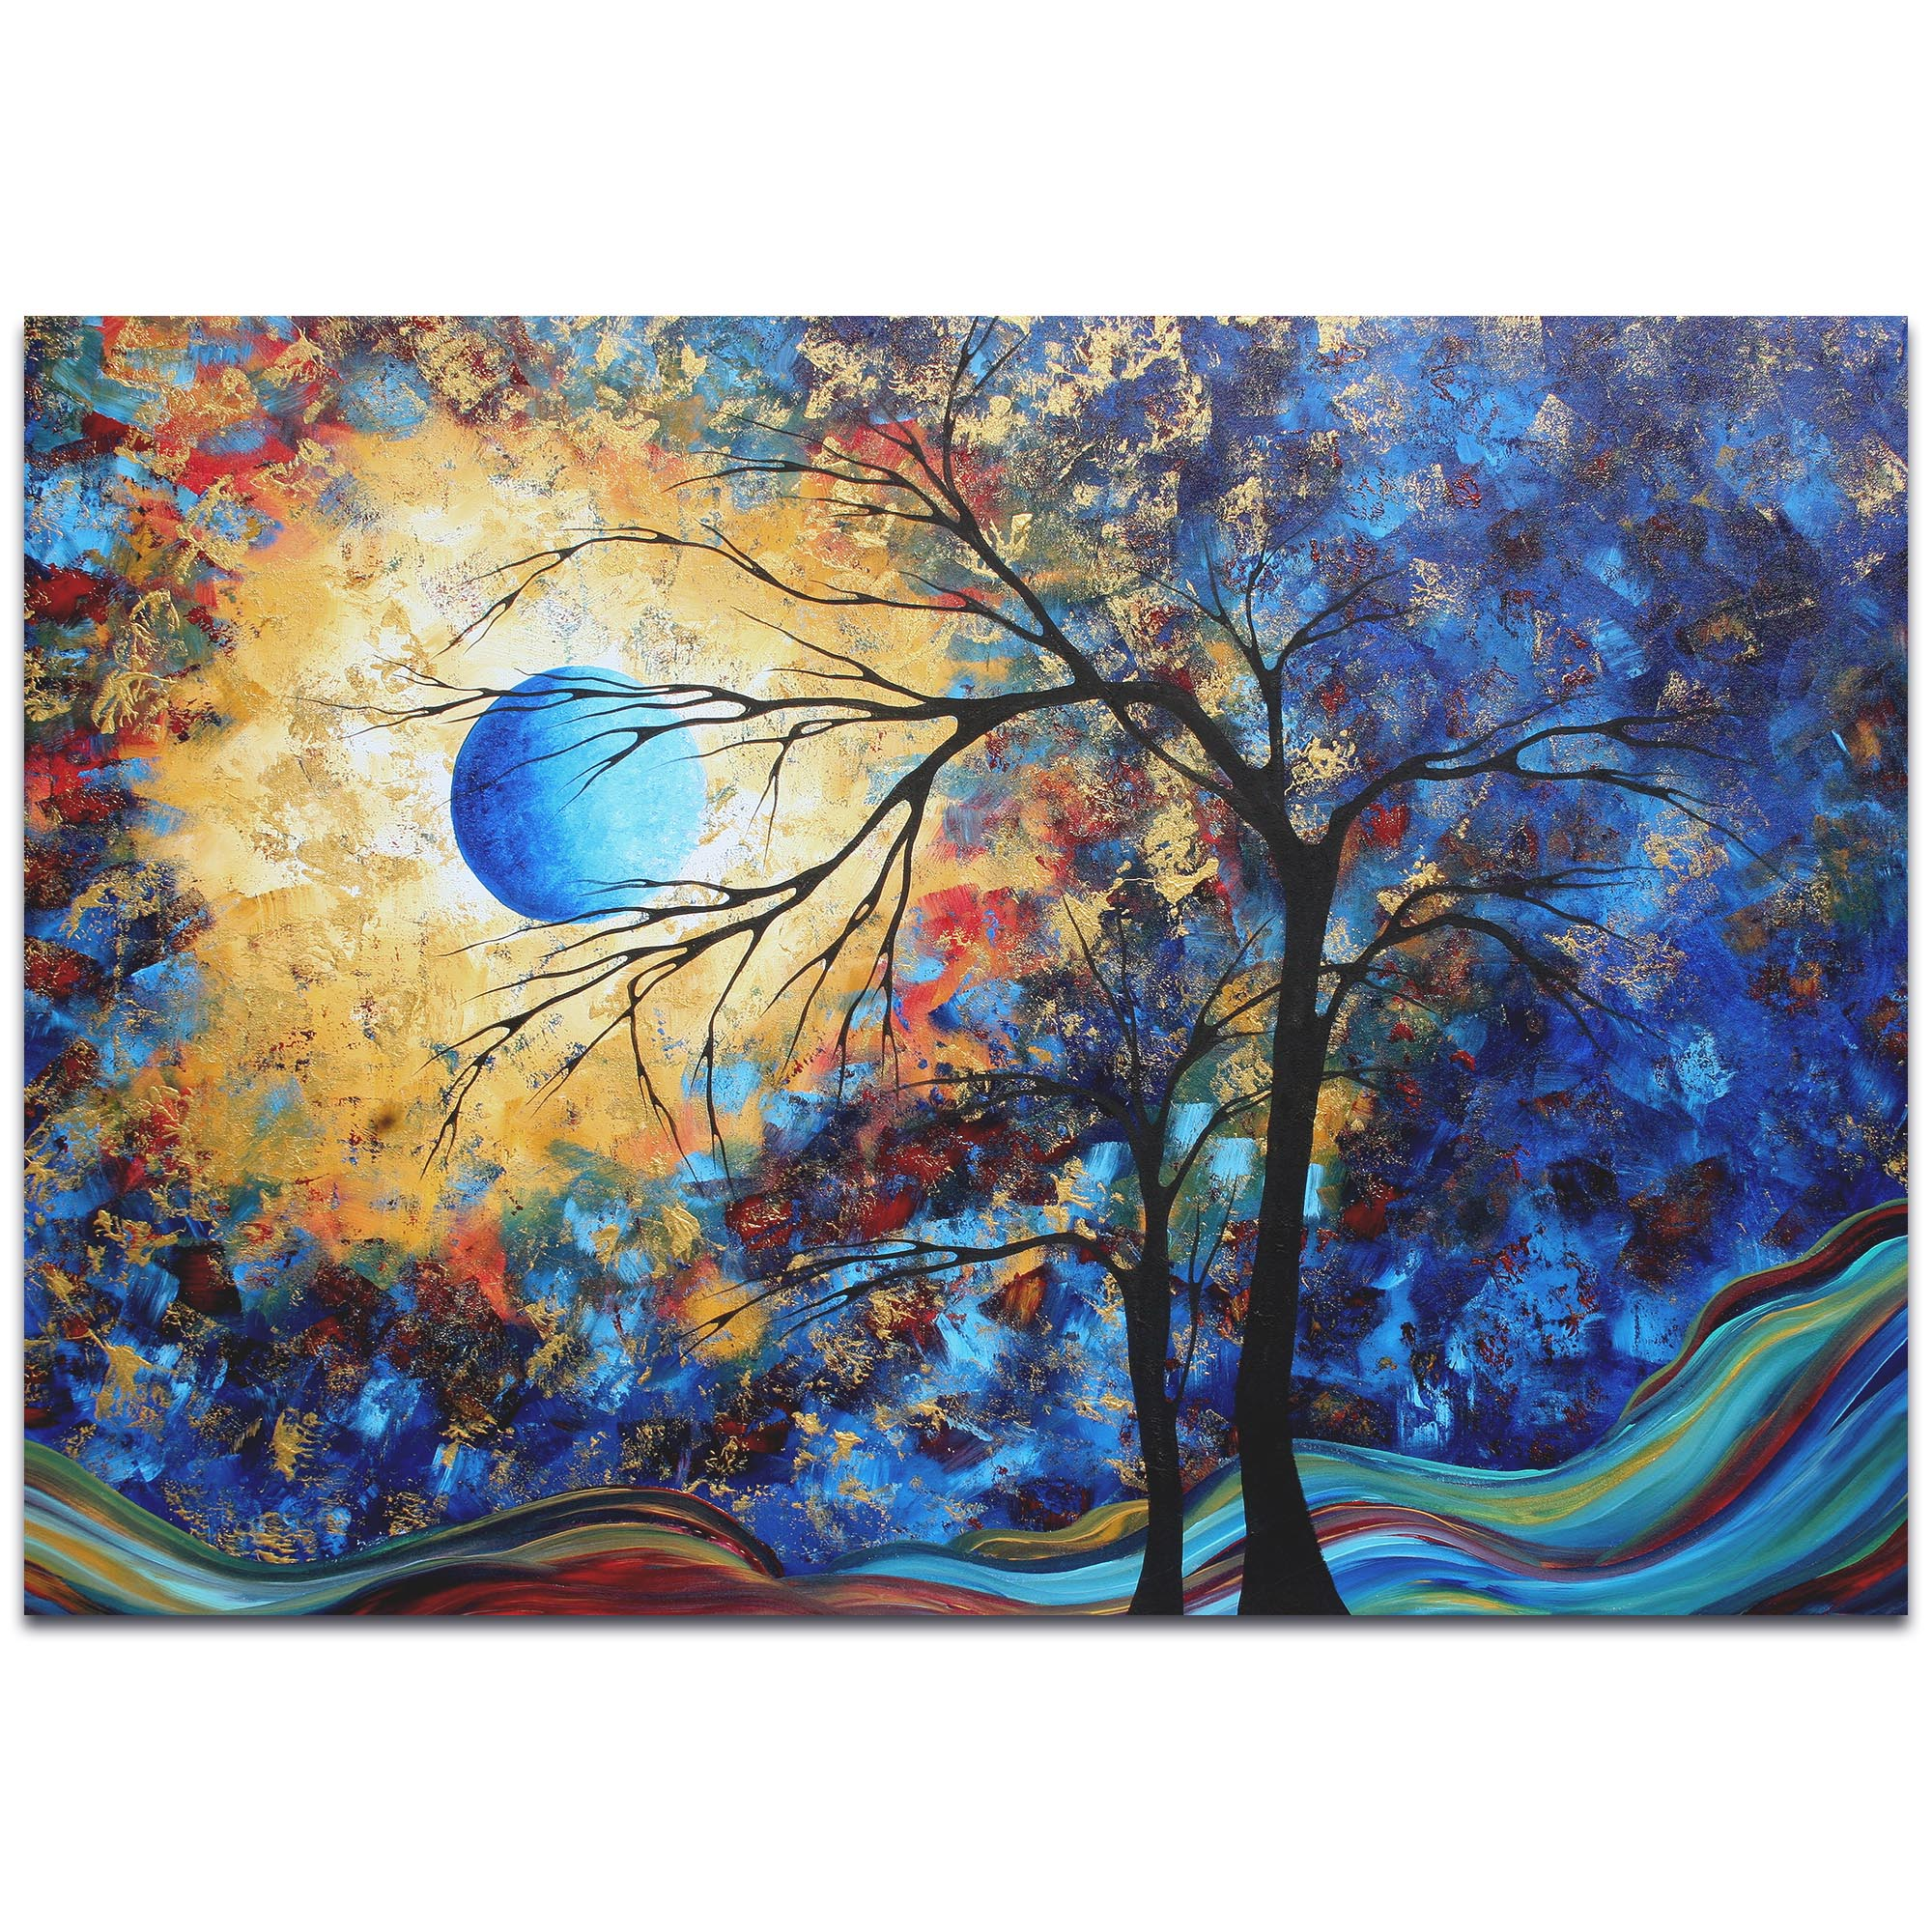 Landscape Painting 'Eye of the Universe' - Abstract Tree Art on Metal or Acrylic